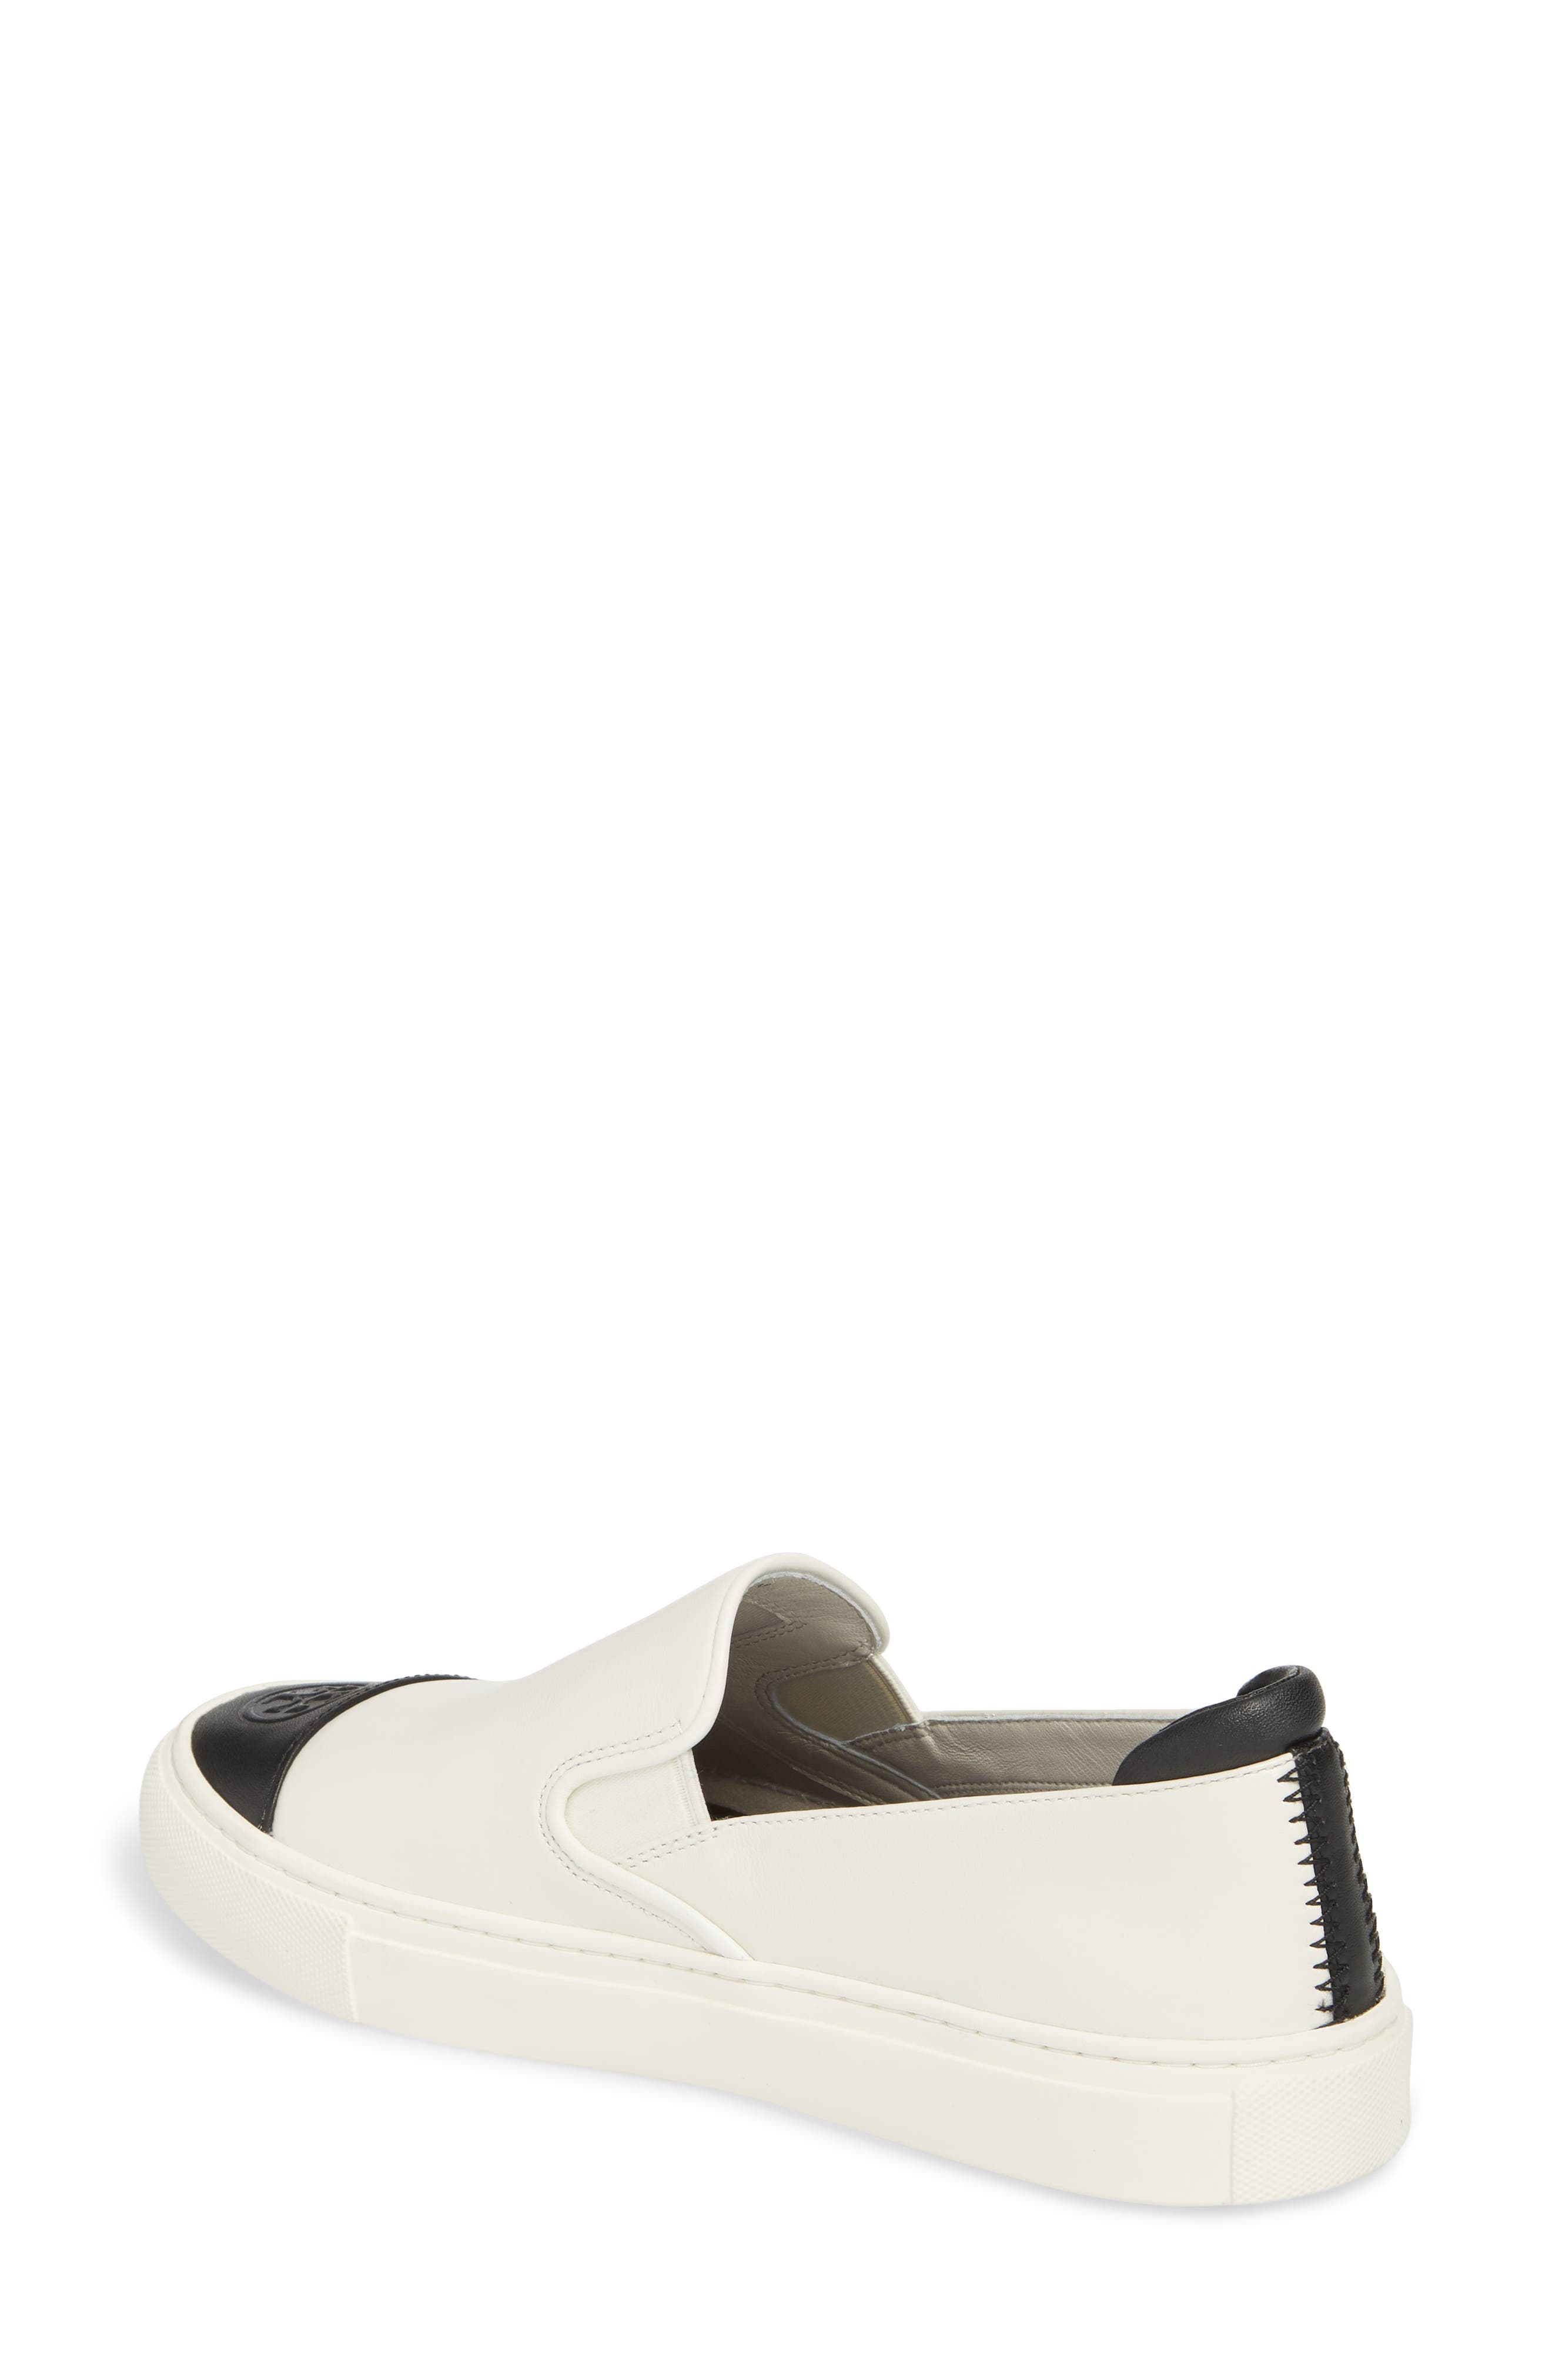 Colorblock Slip-On Sneaker,                             Alternate thumbnail 2, color,                             PERFECT IVORY/ PERFECT BLACK